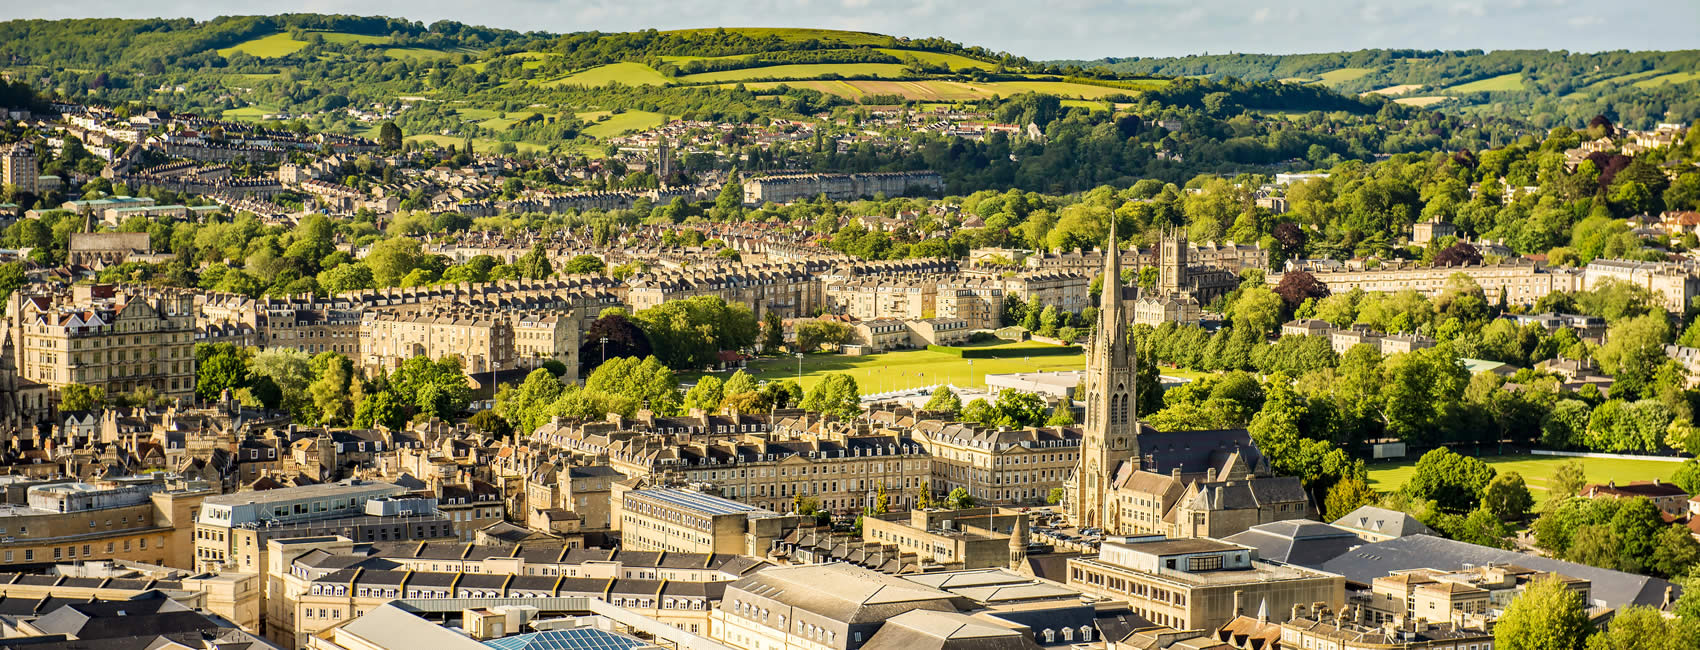 Aerial view of Bath in Somerset